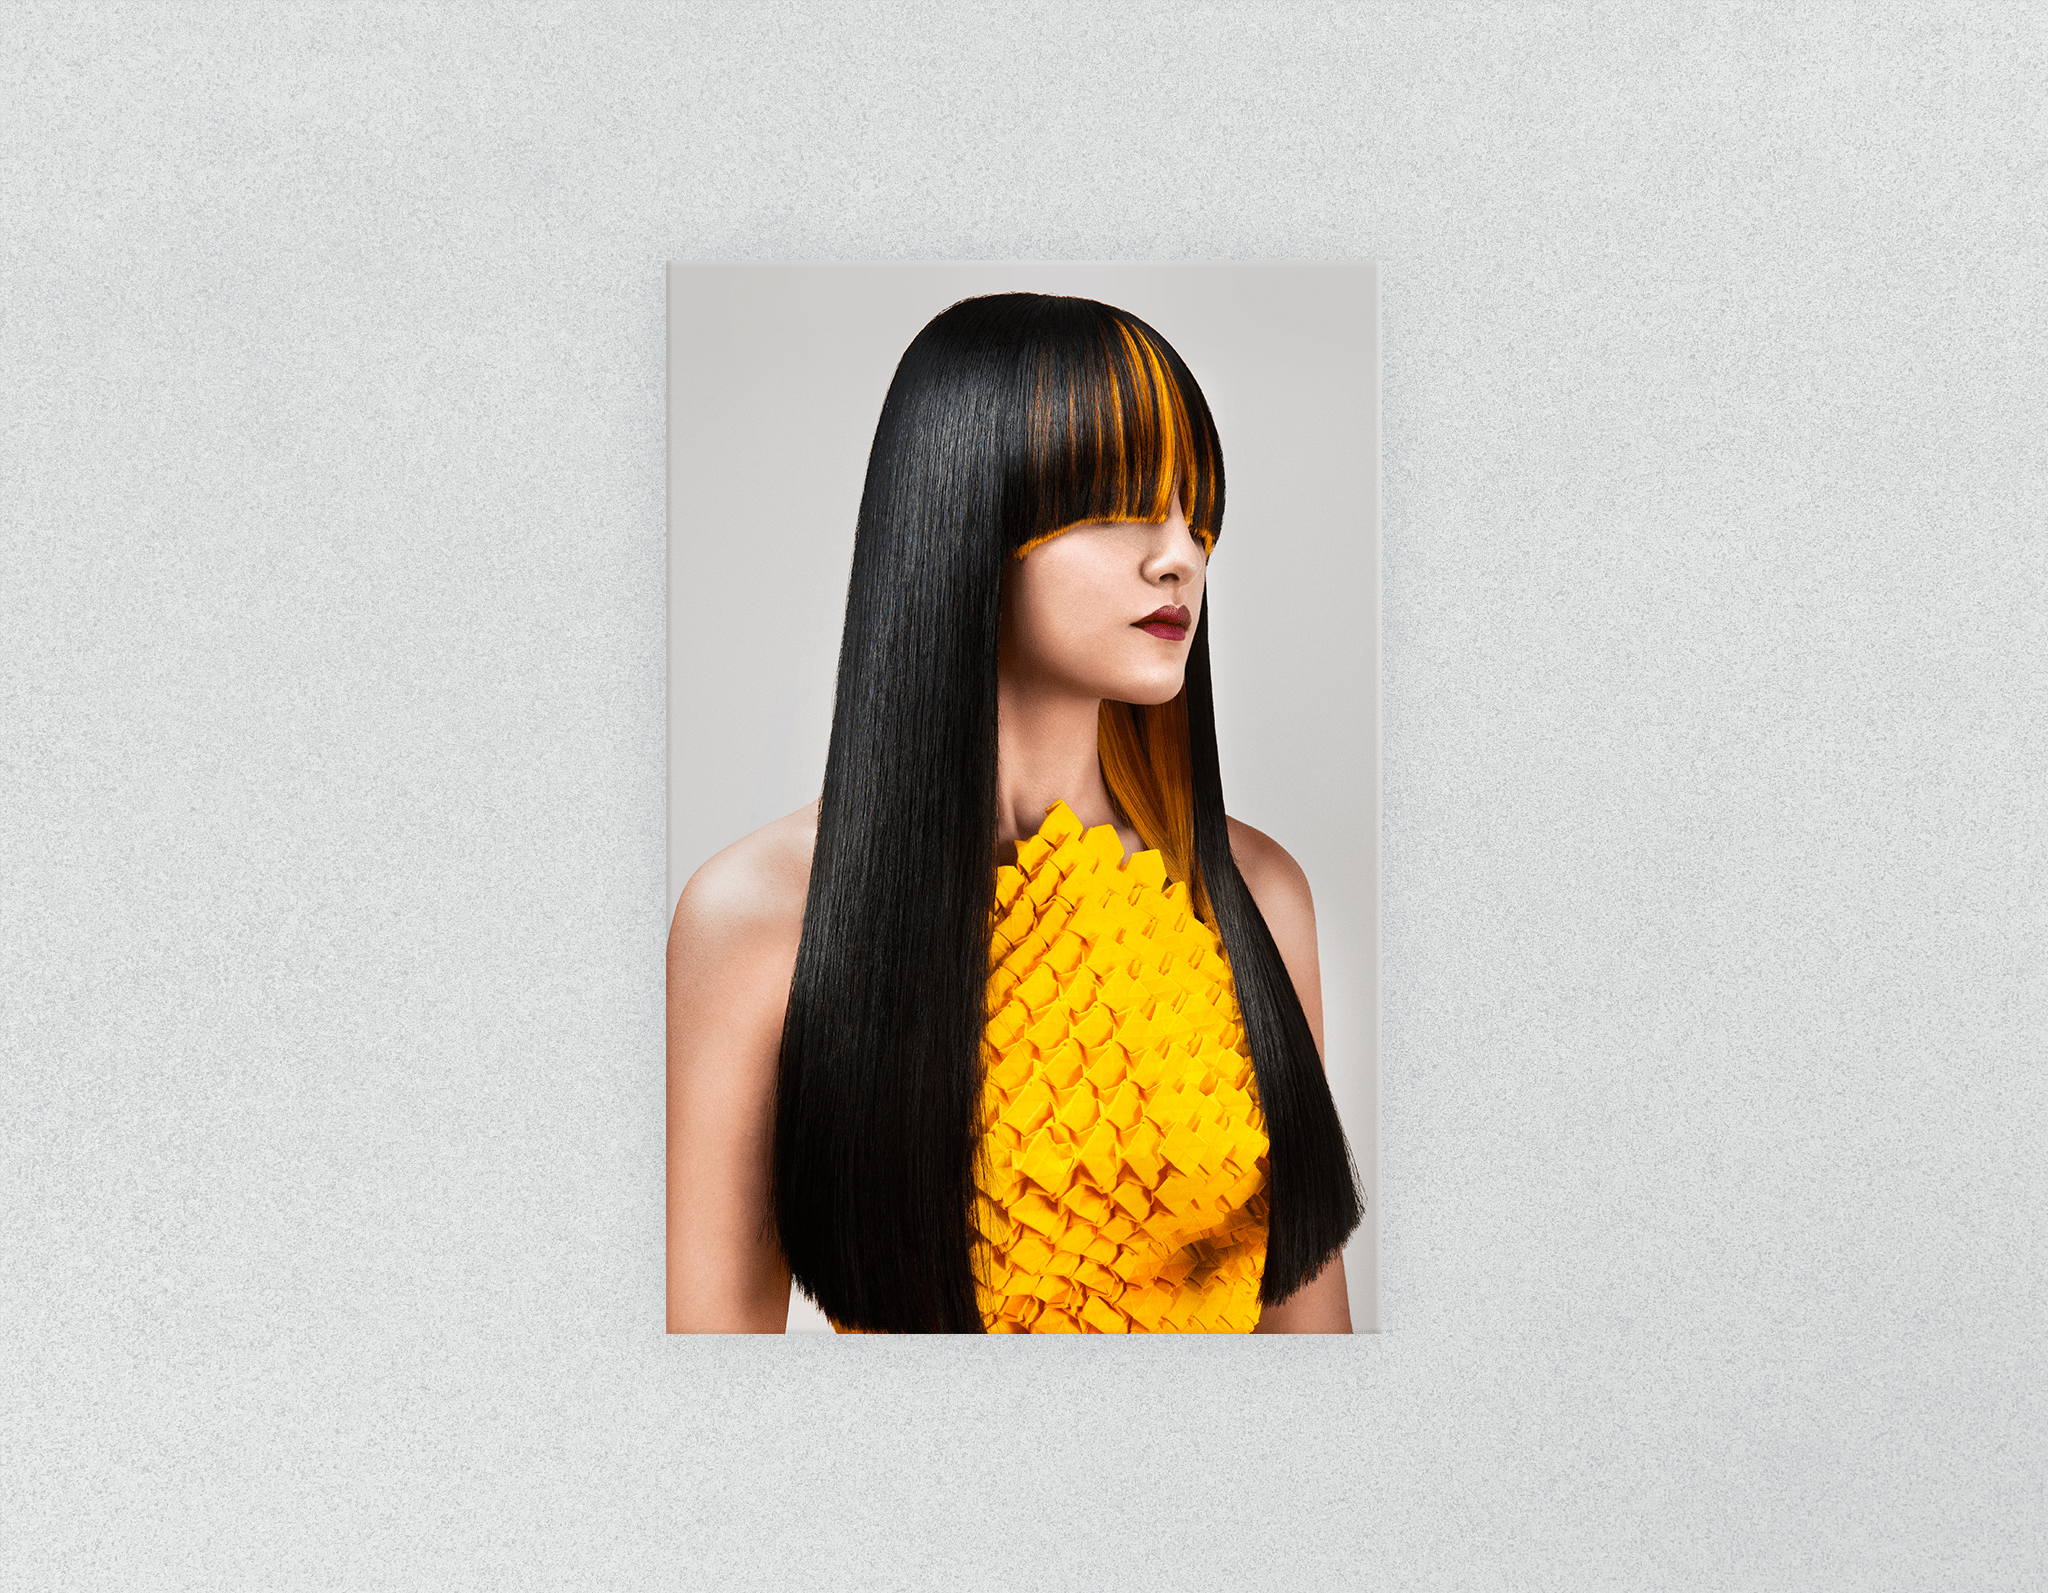 Plastic Salon Posters: Woman Front with Long Straight Hair with Orange Highlights